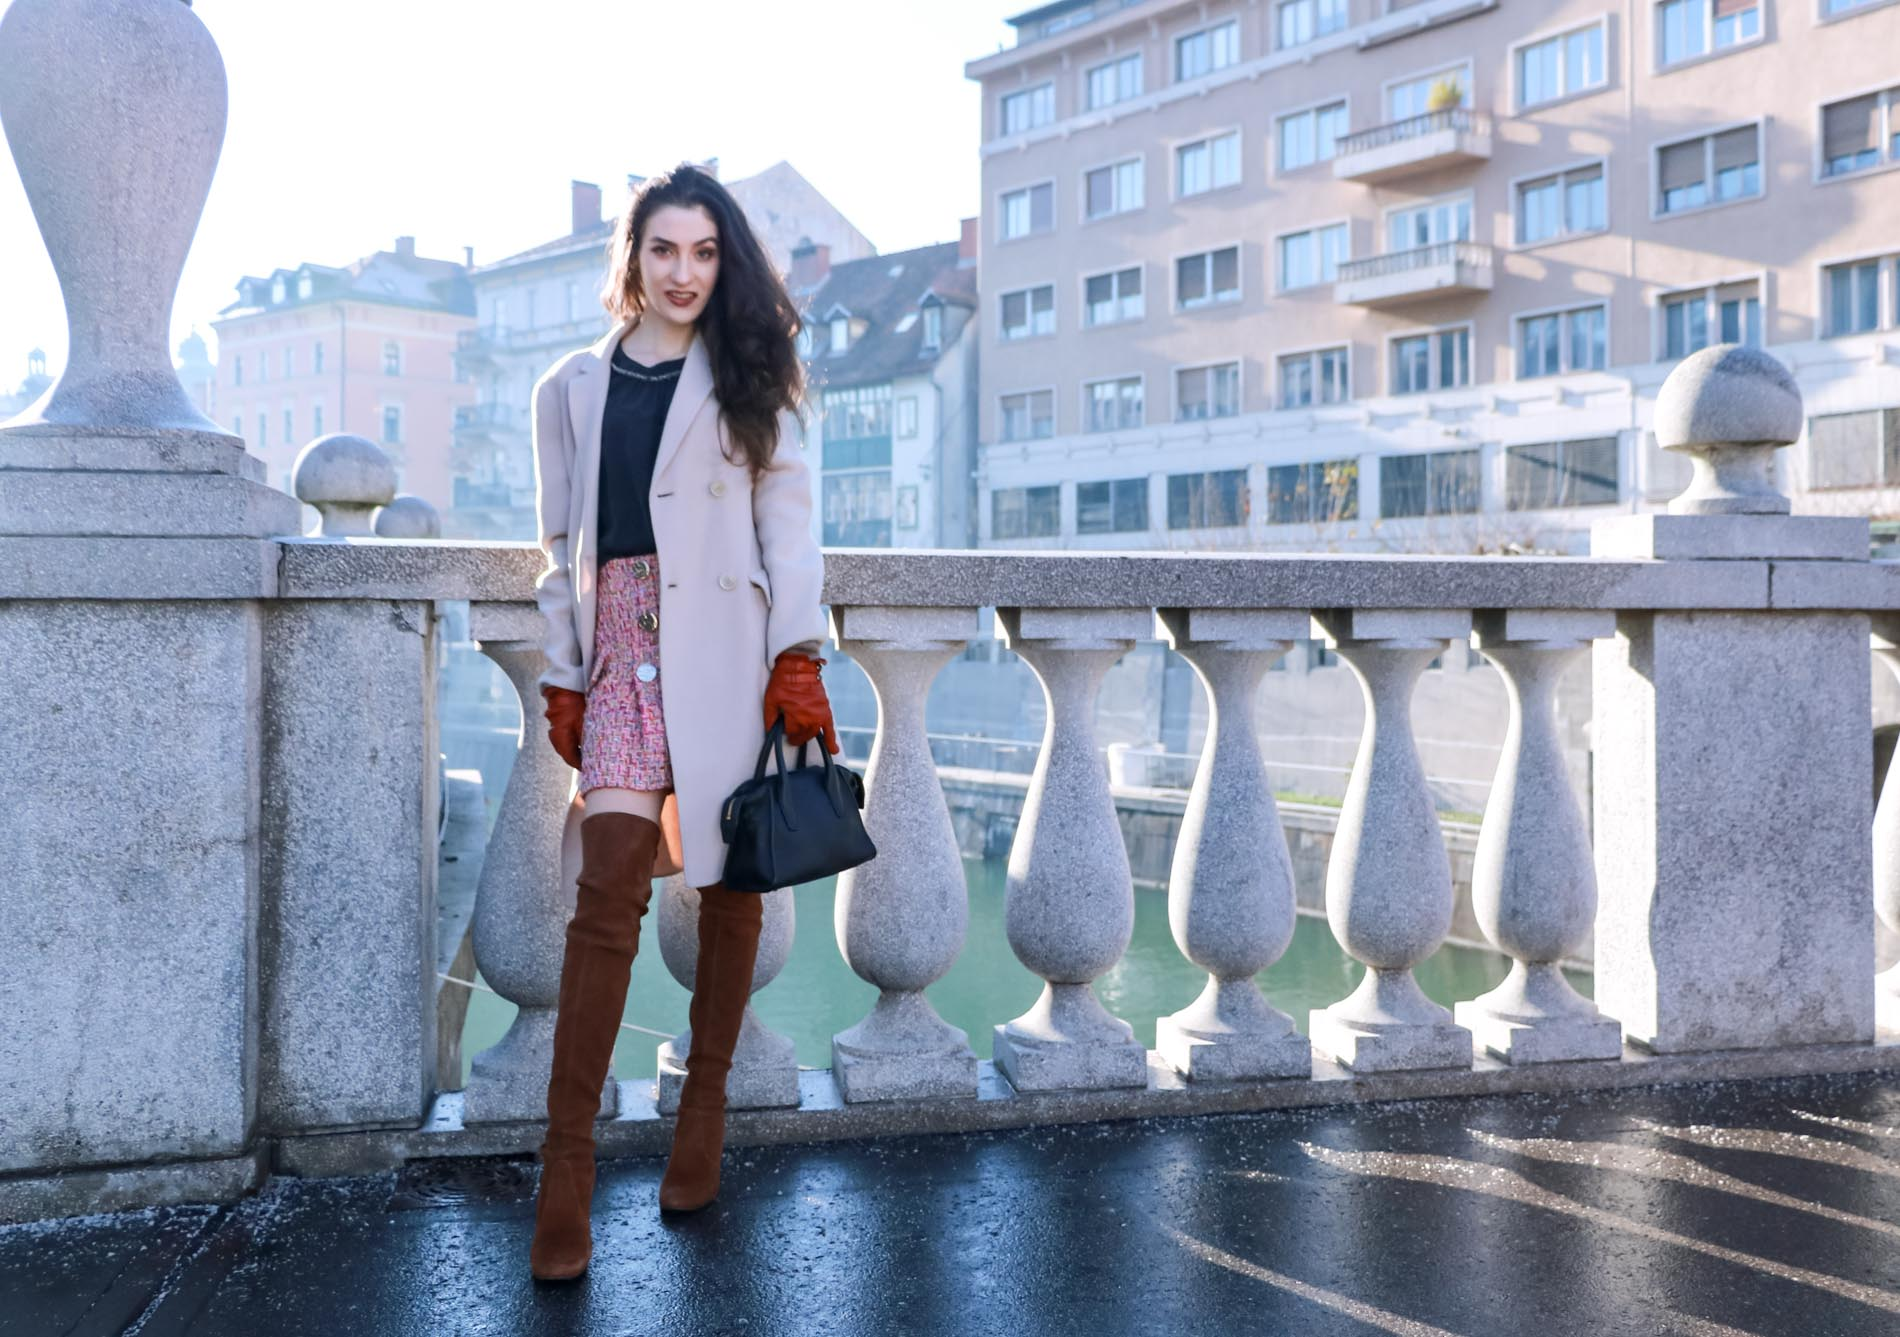 Fashion Blogger Veronika Lipar of Brunette from Wall Street wearing Storets pink tweed mini skirt, double breasted ivory coat from Weekend Maxmara, black silk blouse from Juicy couture, small black top handle bag, brown over the knee boots from Stuart Weitzman this winter in Ljubljana